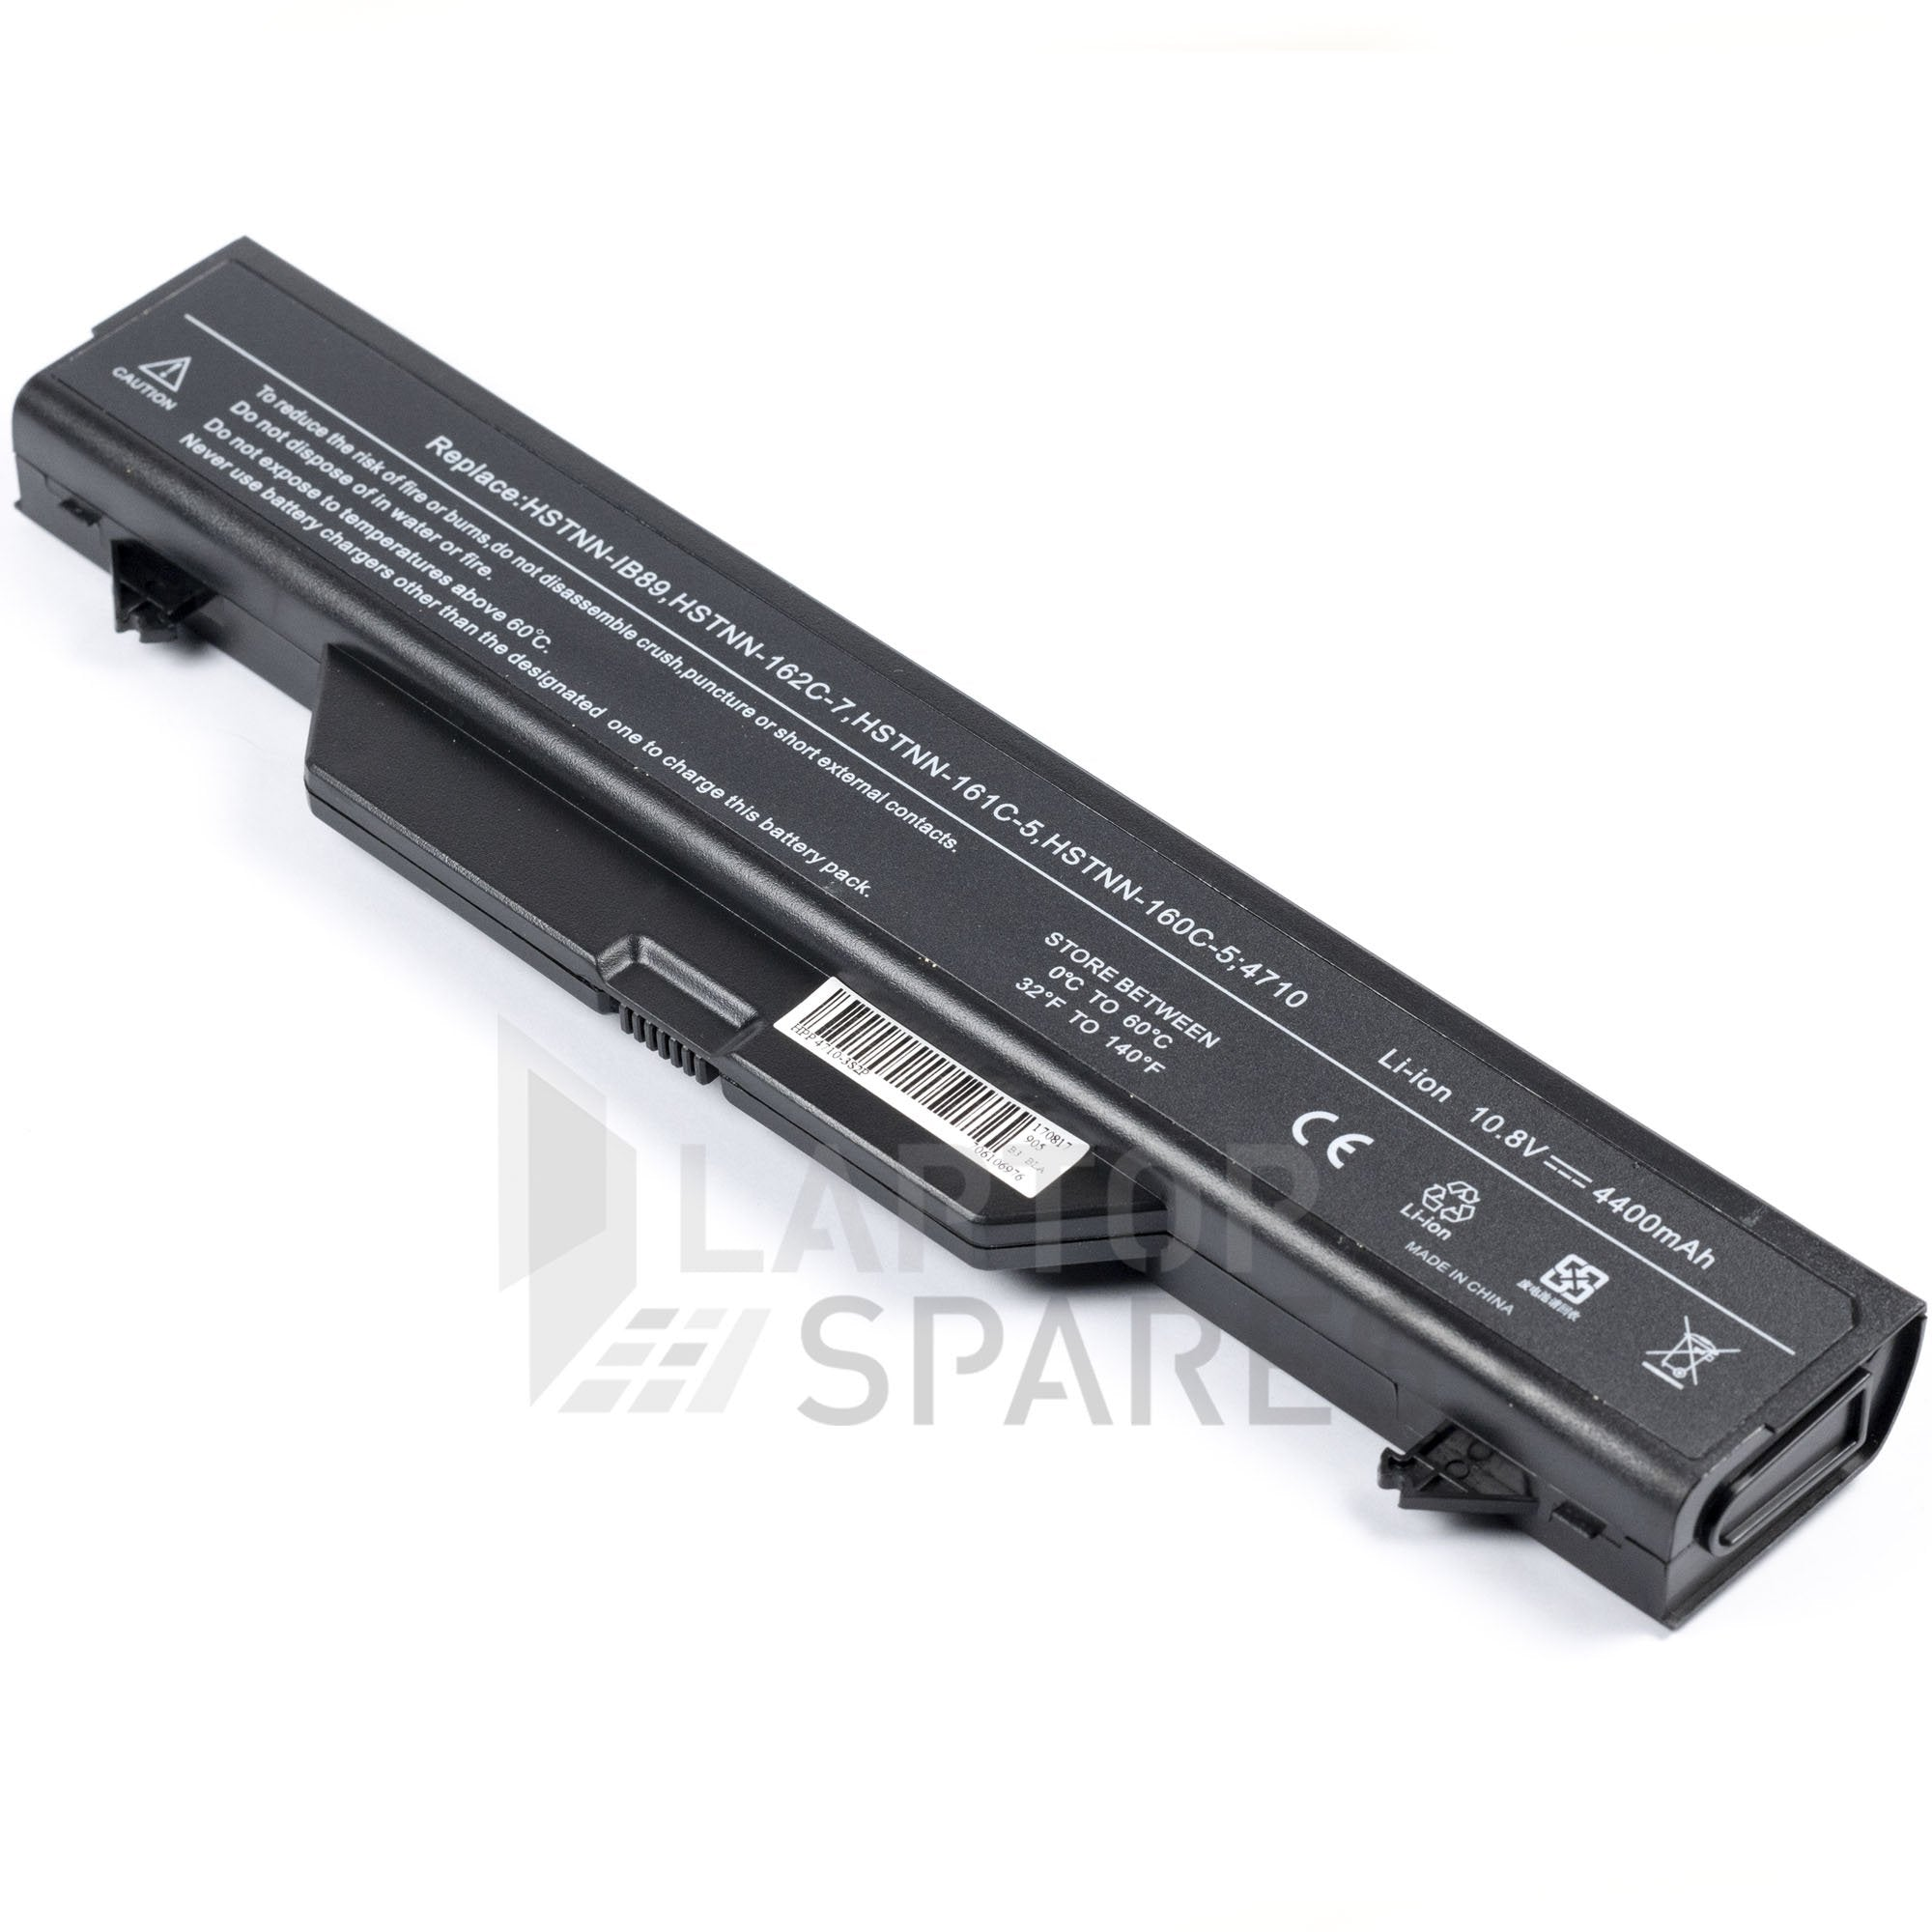 HP ProBook 4720S 4400mAh 6 Cell Battery